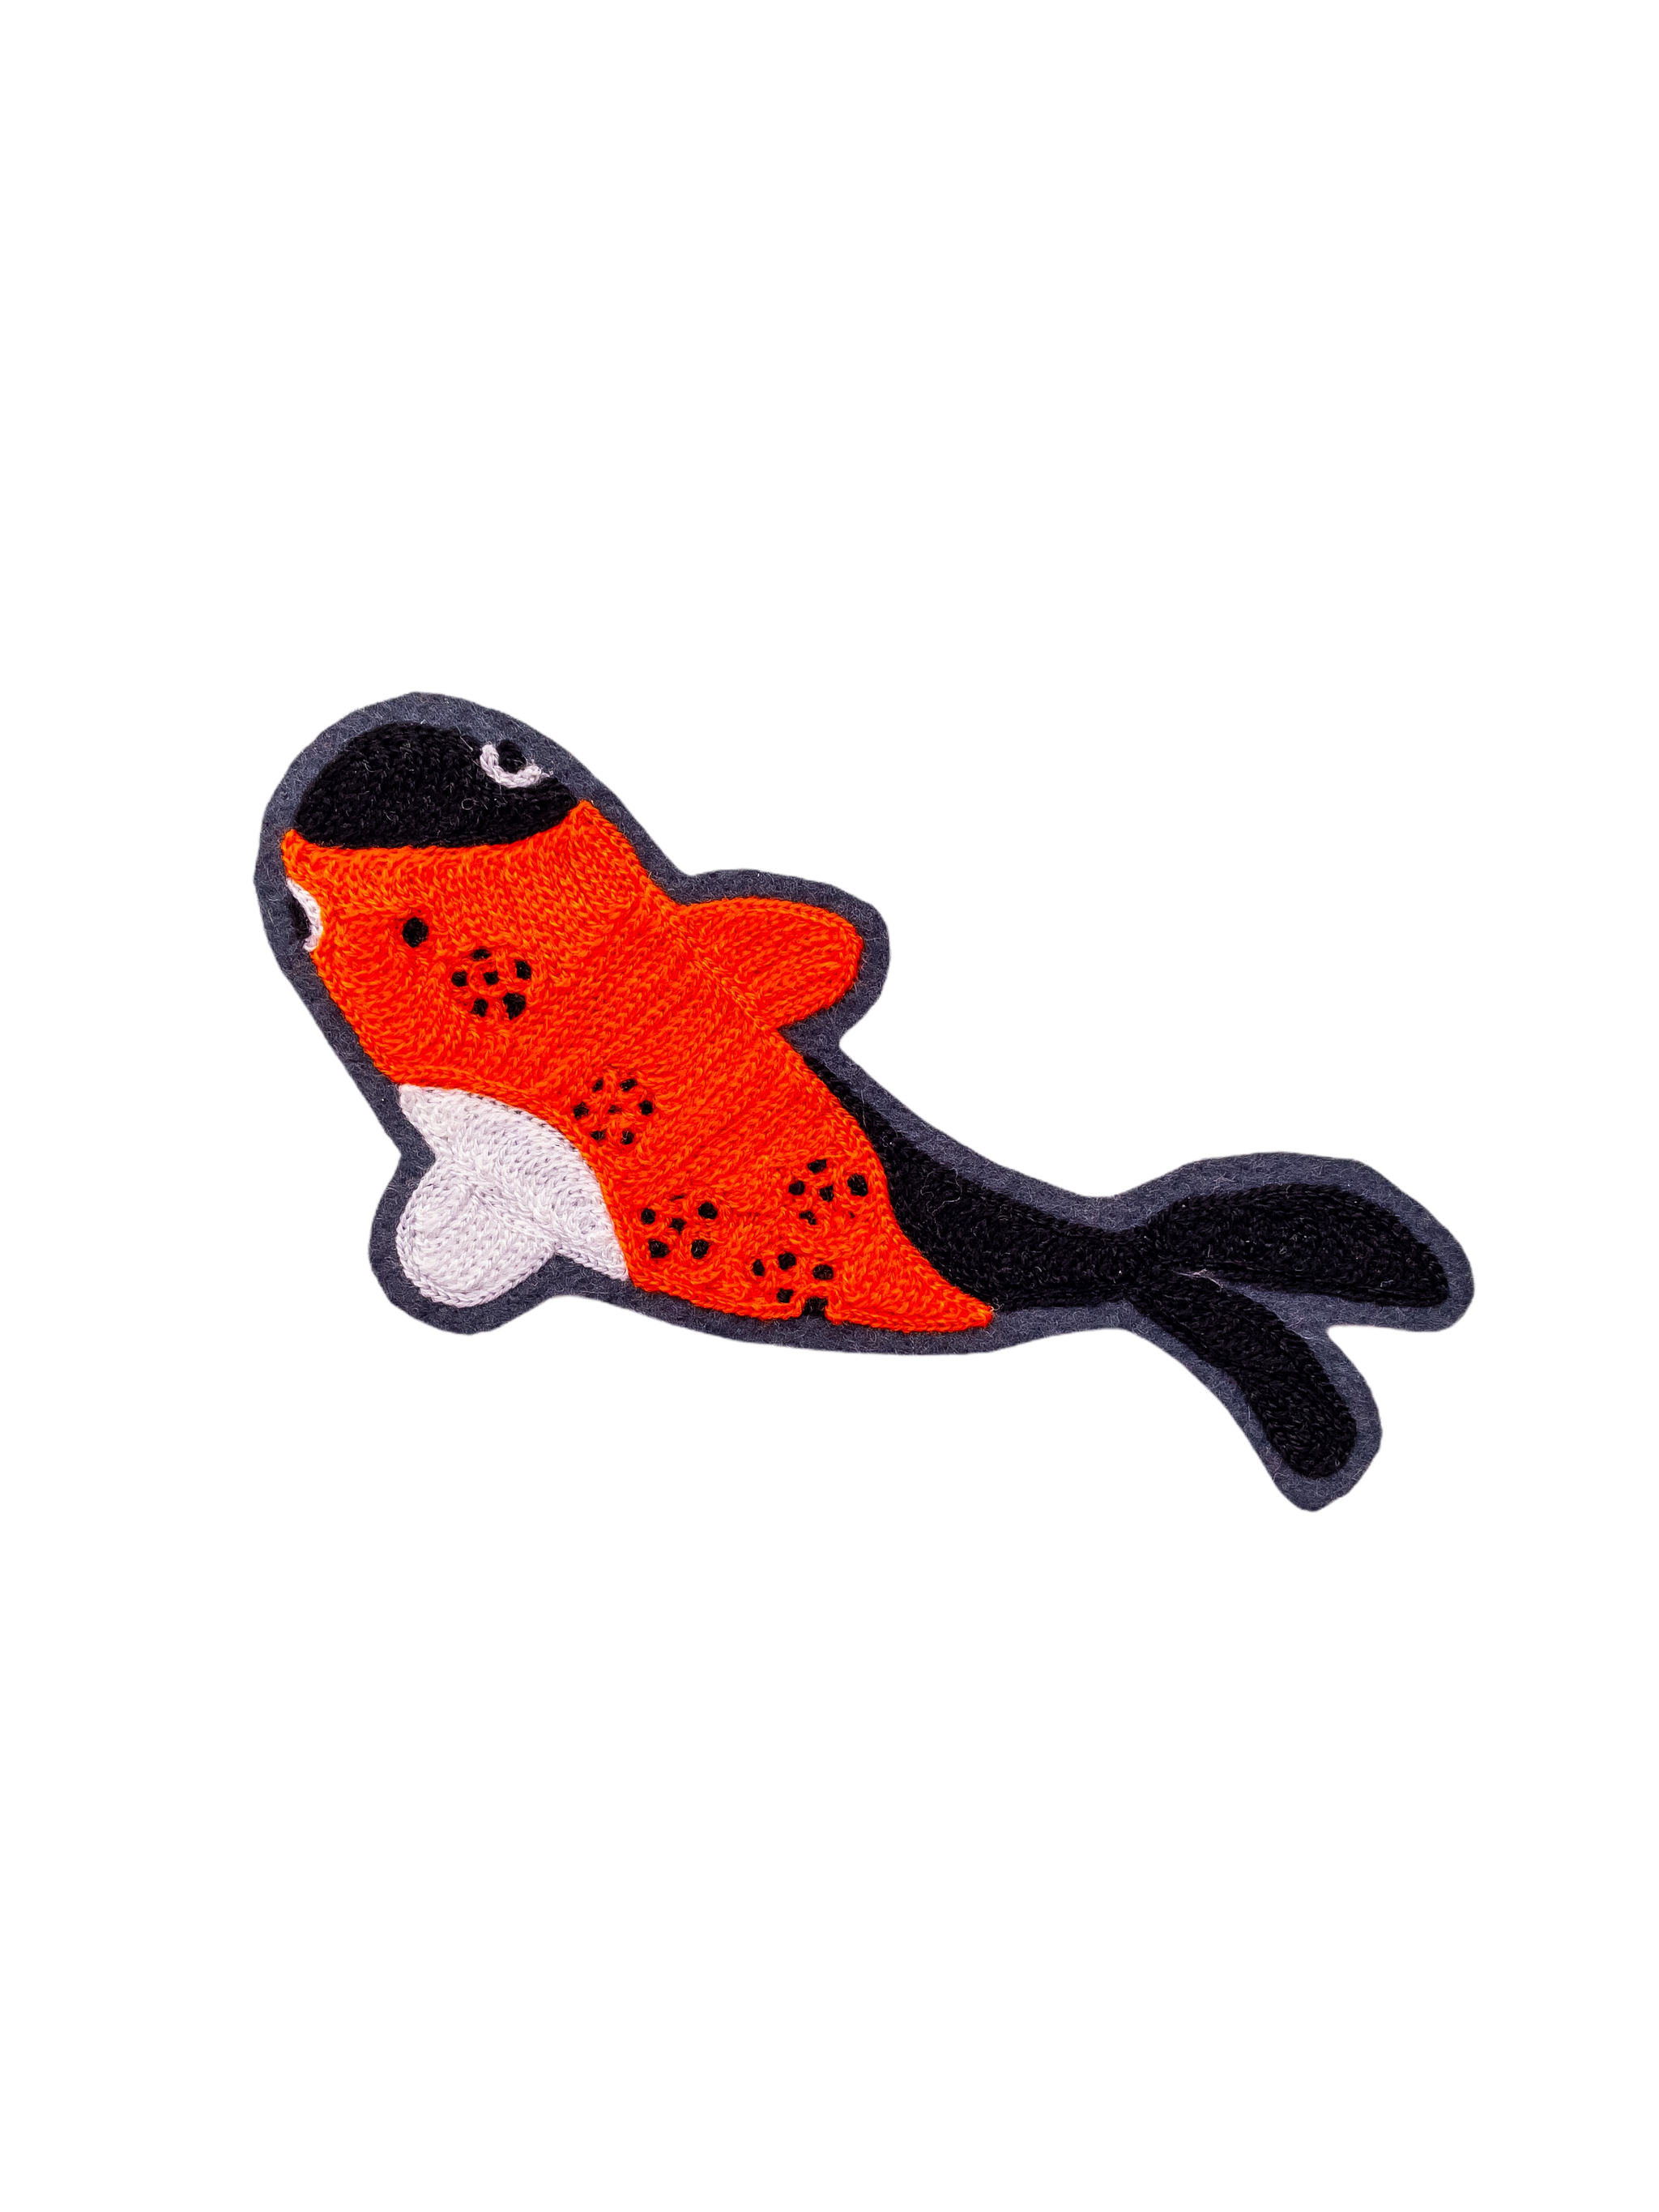 Koi Fish - Chainstitch Patch